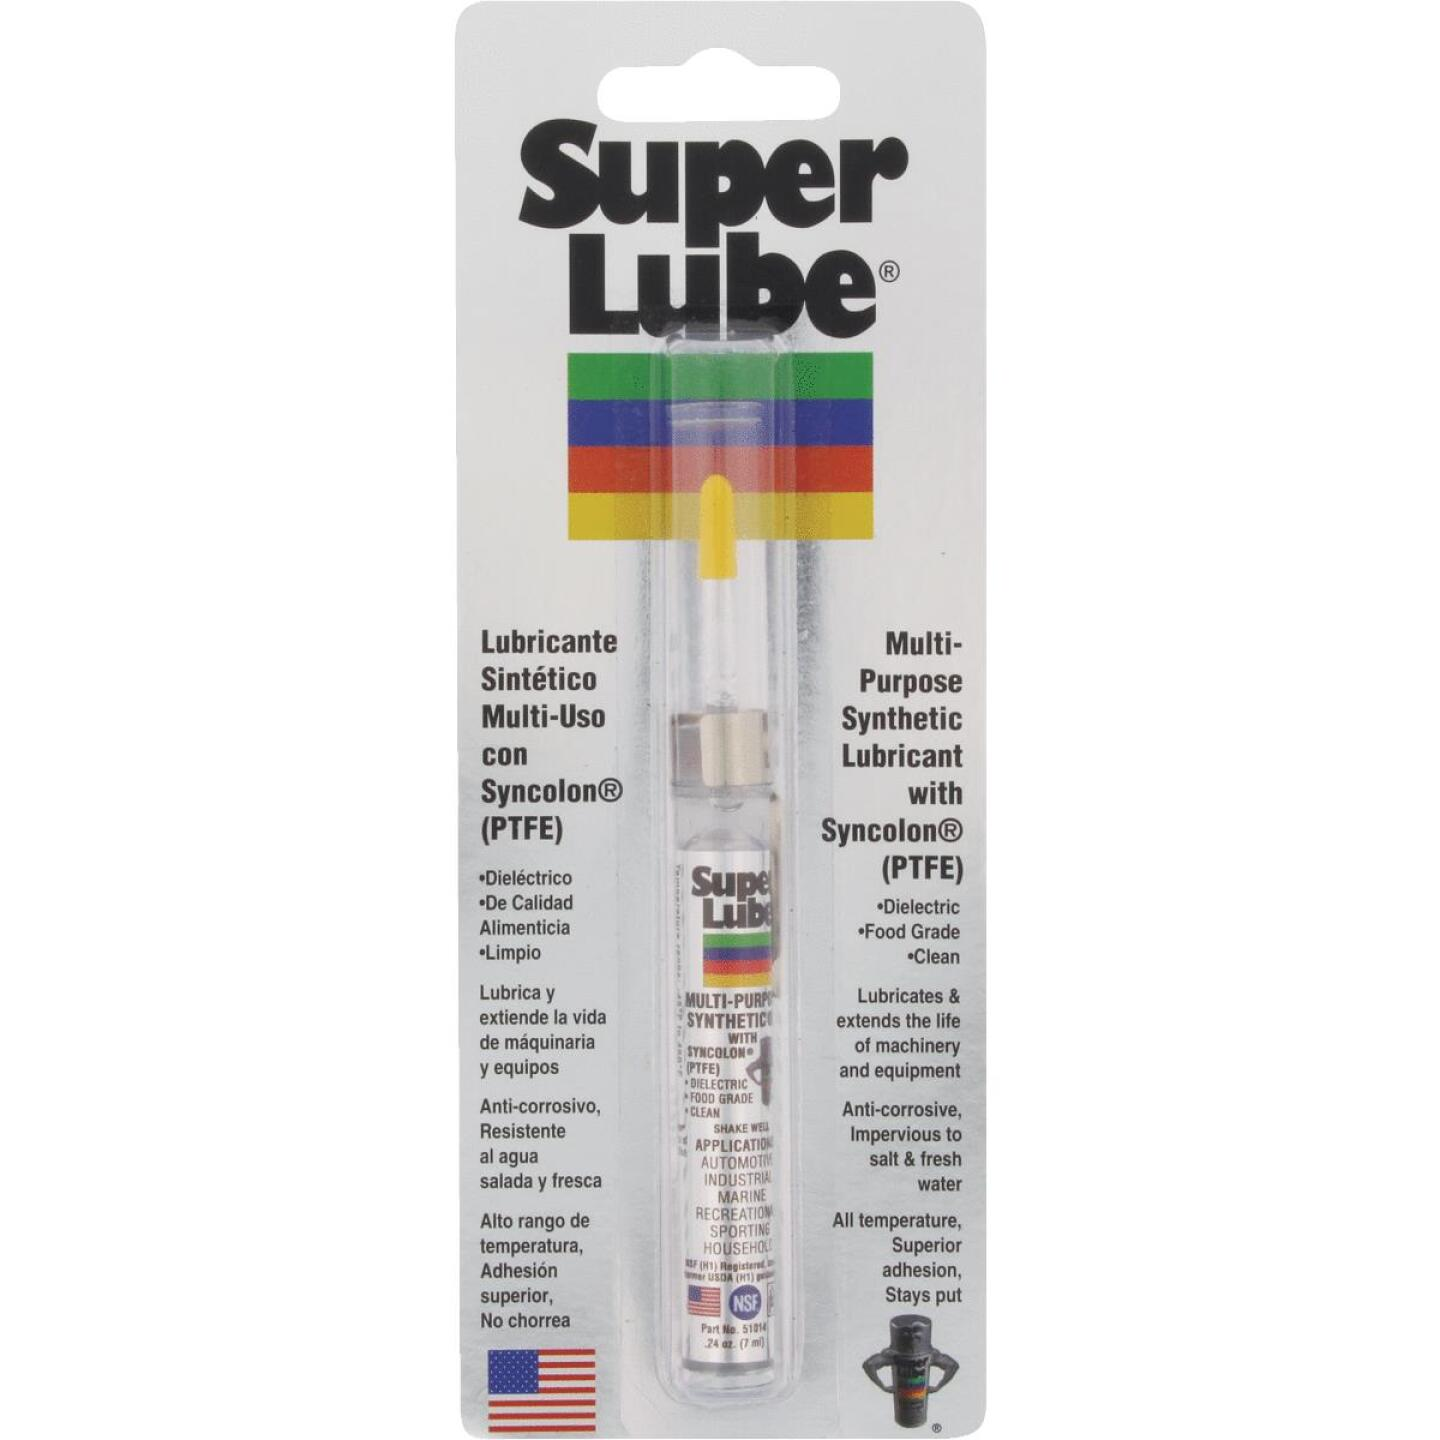 Super Lube 0.25 Oz. Tube Synthetic Multi-Purpose Lubricant Image 1